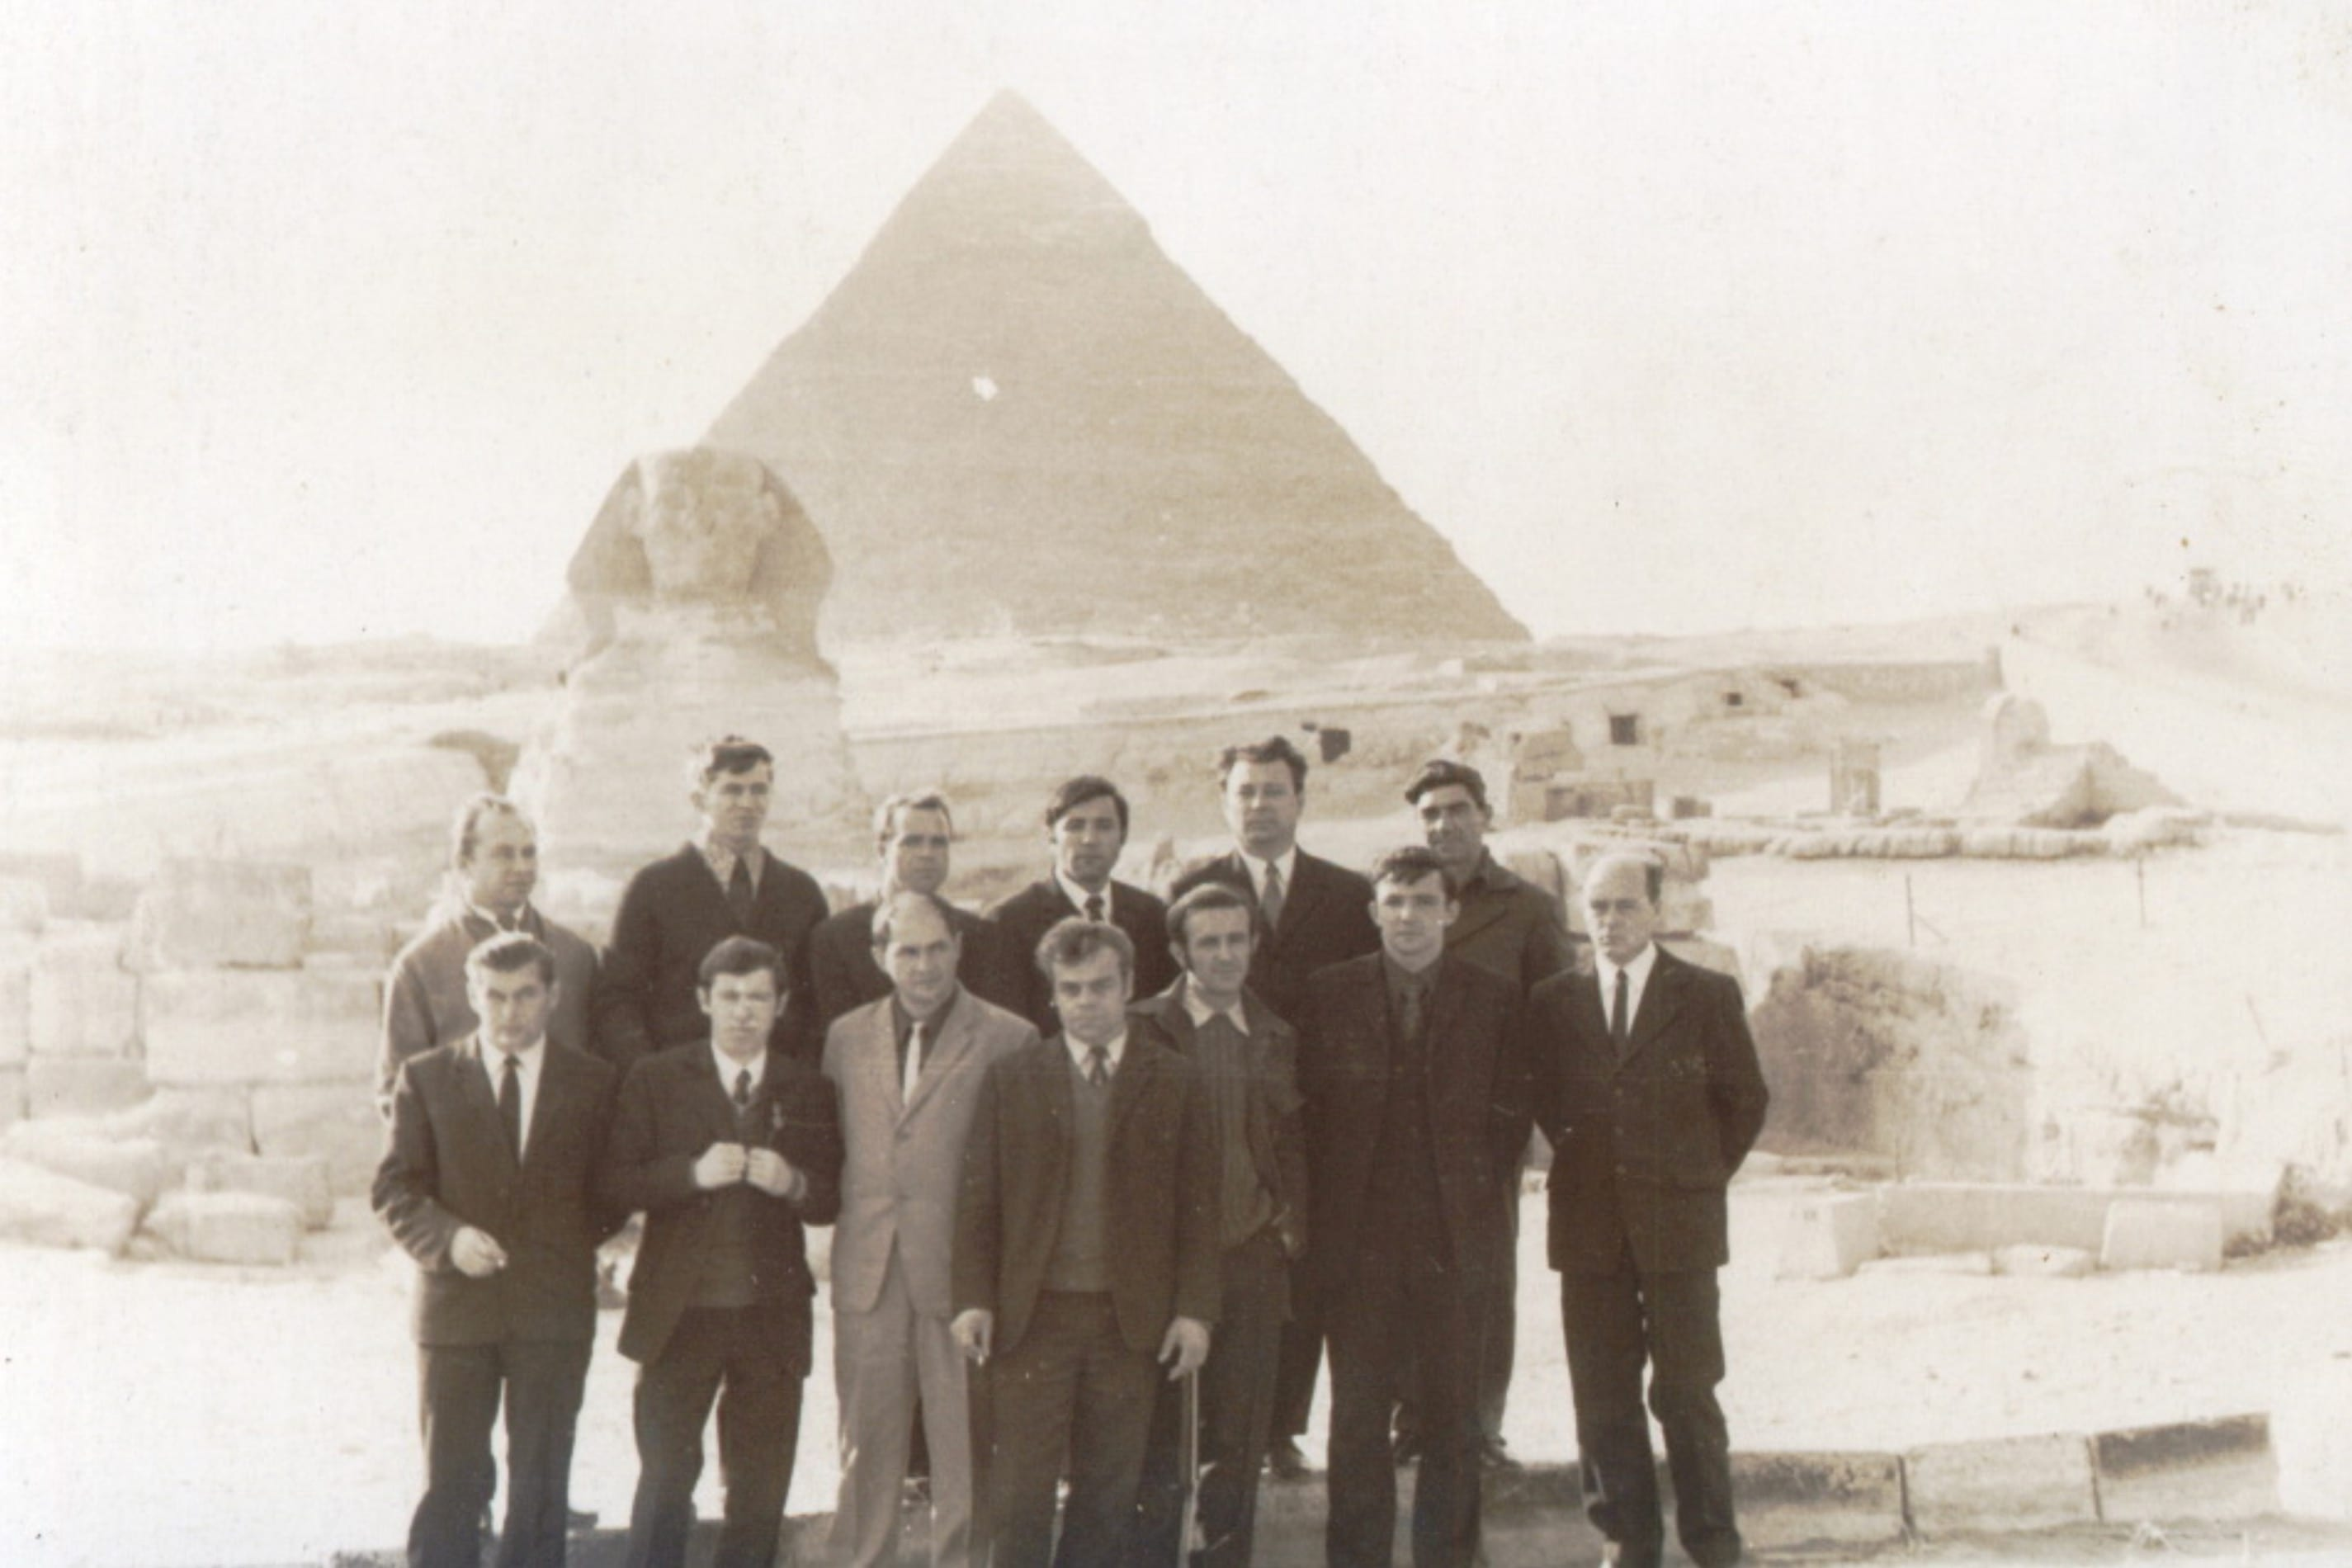 [Soviet military advisers against the background of the Pyramid of Khafre and the Great Sphinx, 1972]